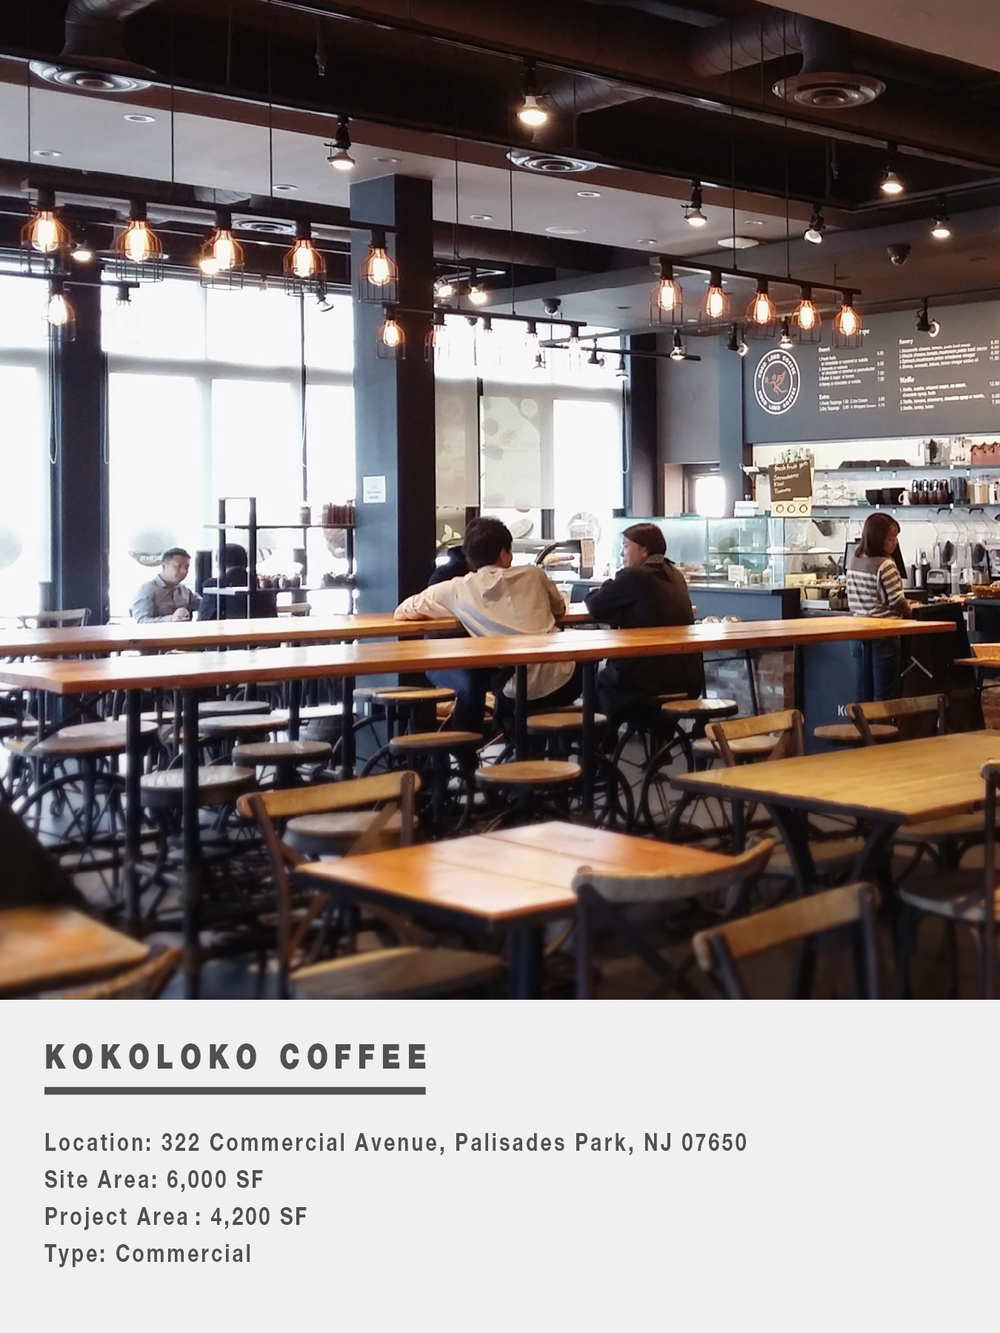 KOKOLOKO COFFEE